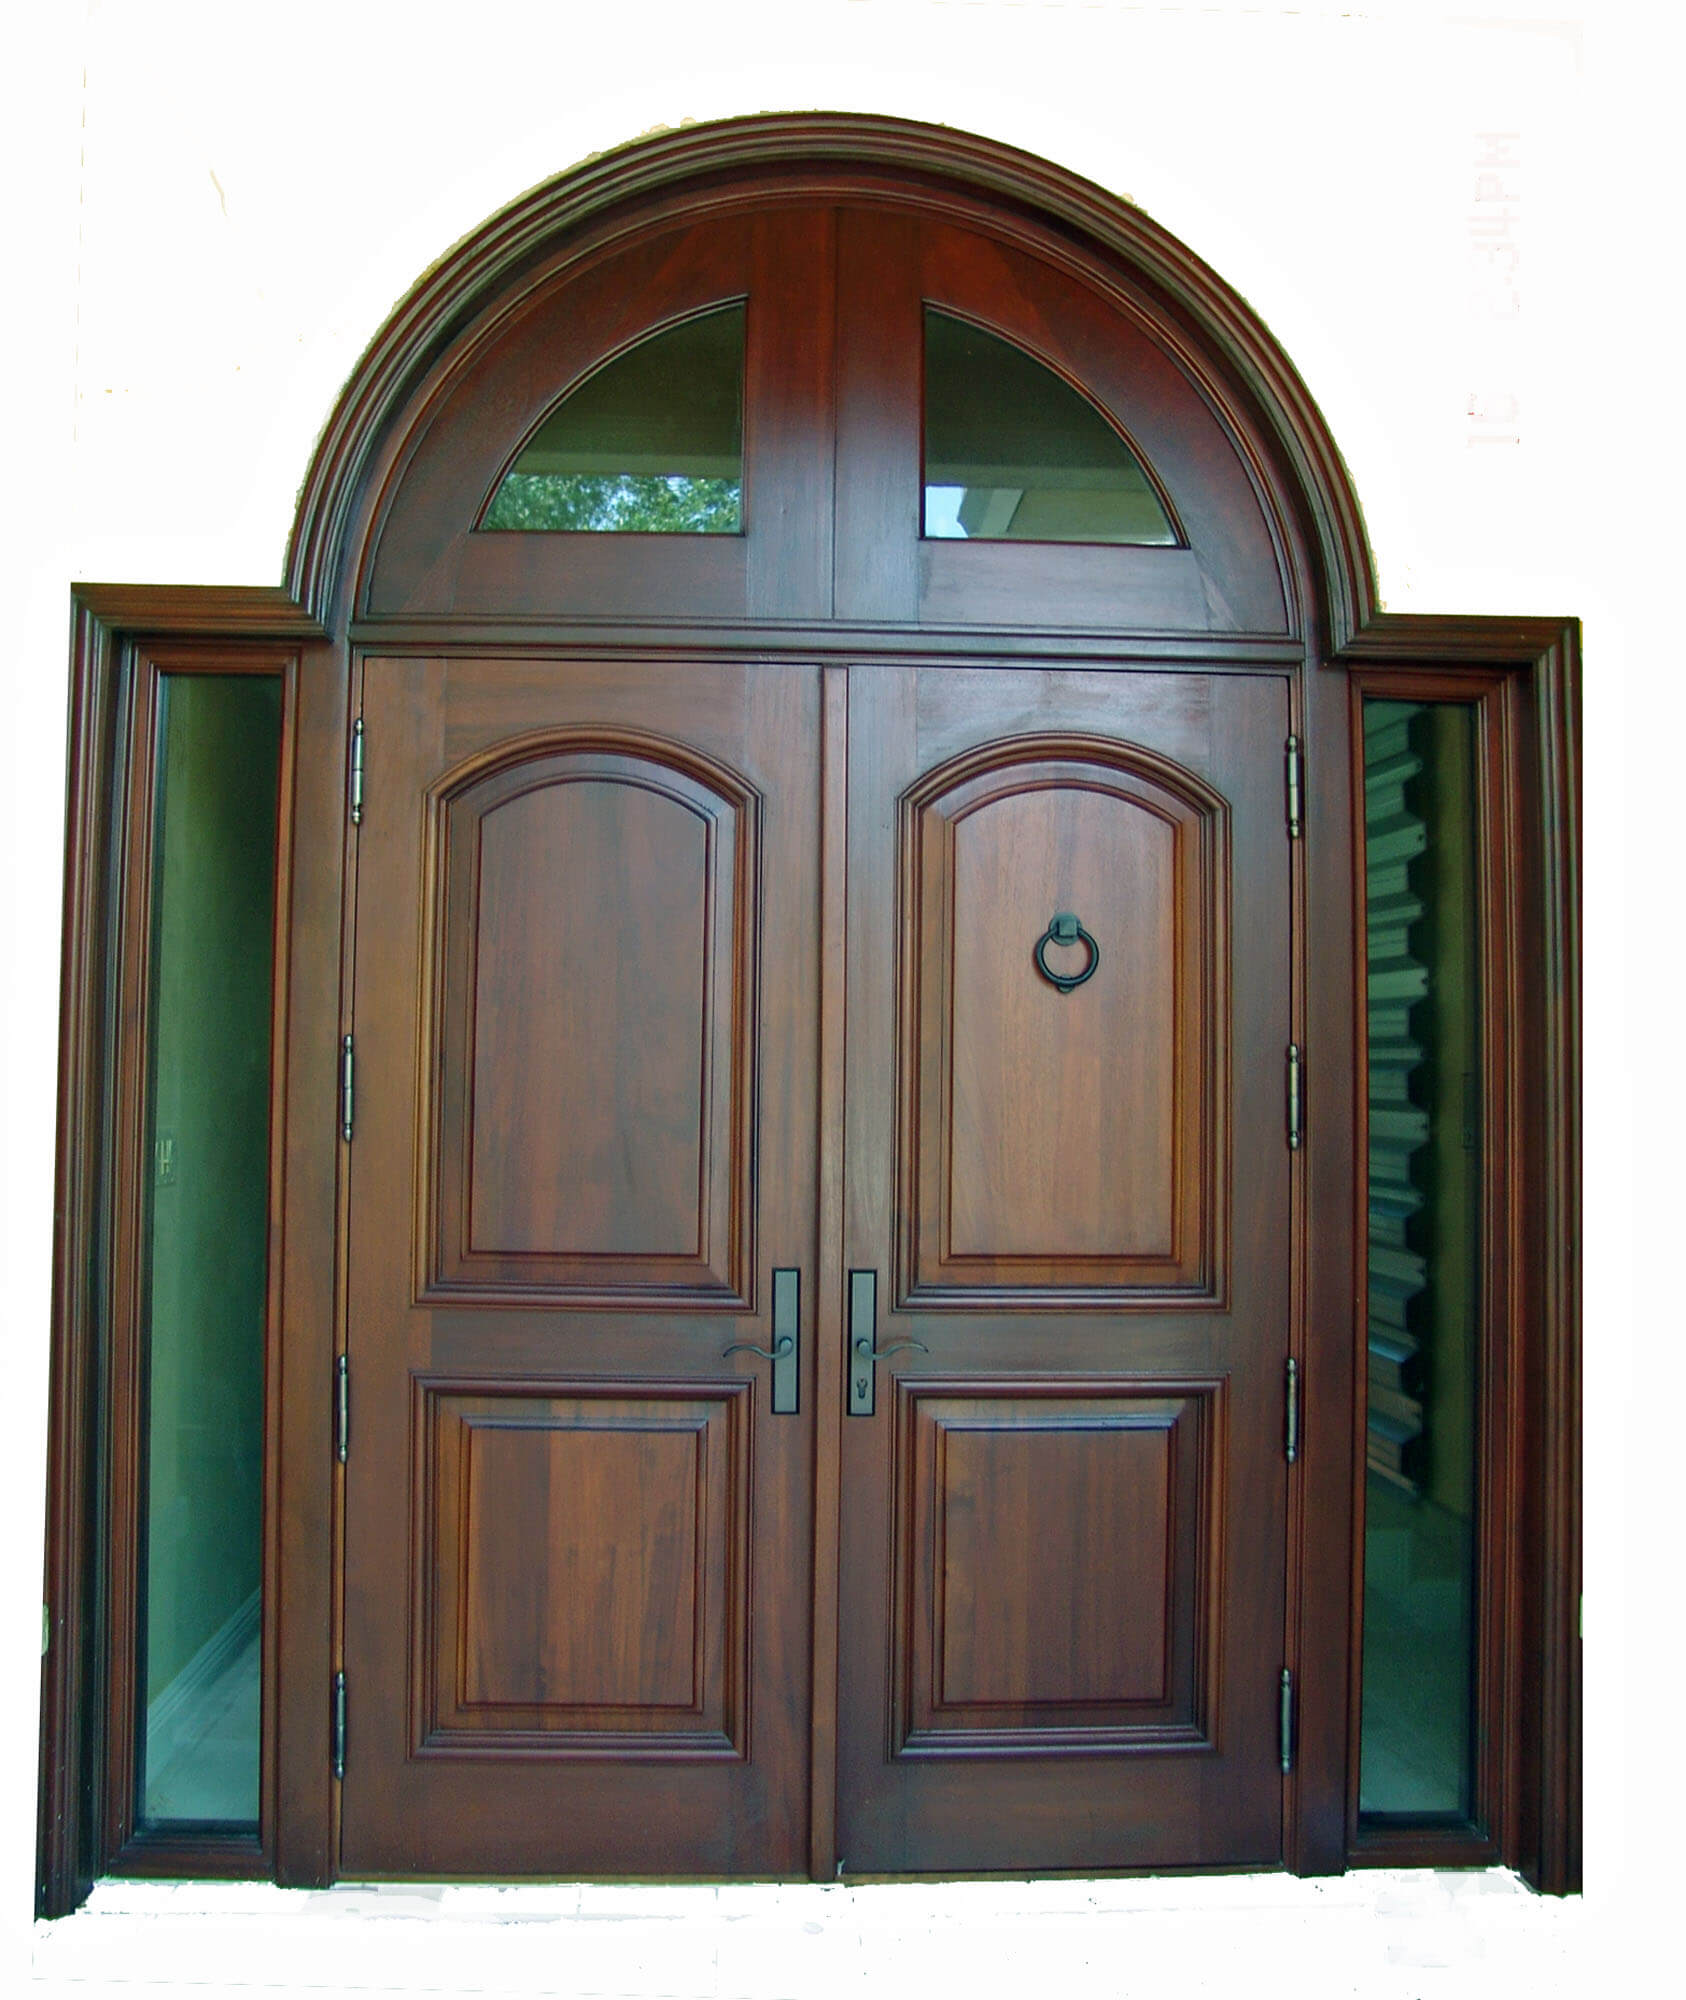 Gables by The Sea Mahogany Entry Door